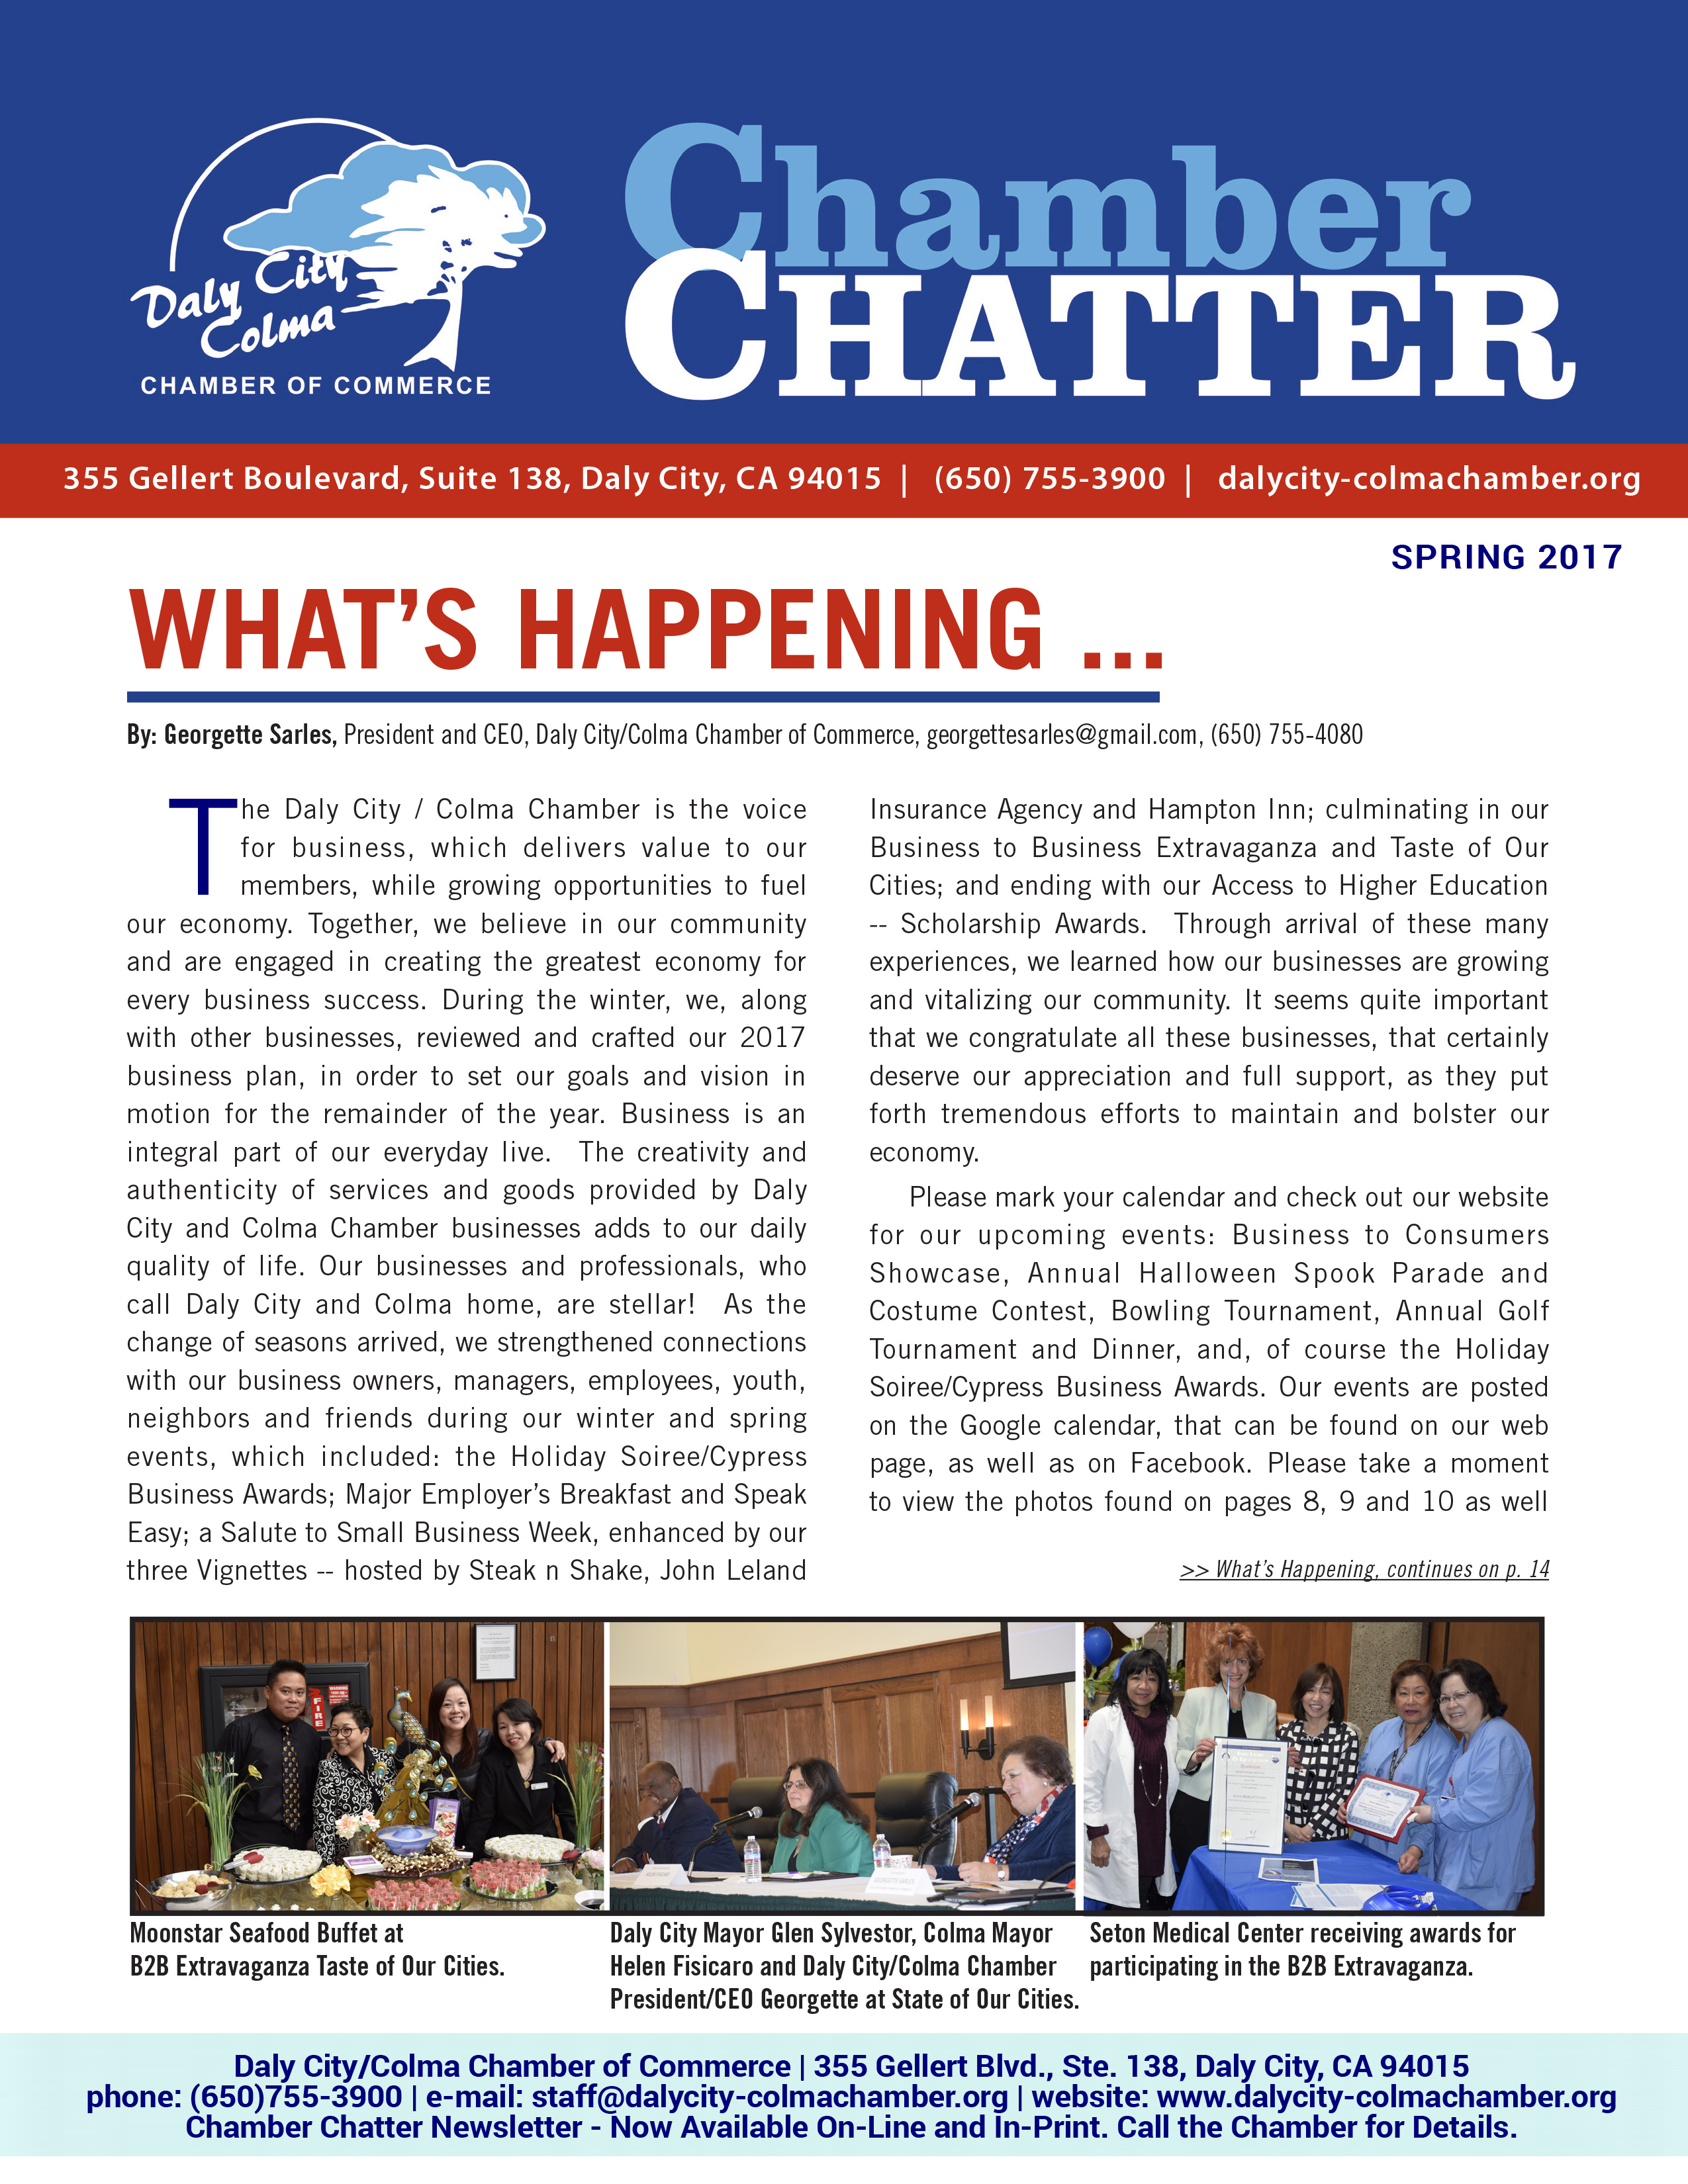 2017 Spring Edition of the Daly City/Colma Chamber Chatter